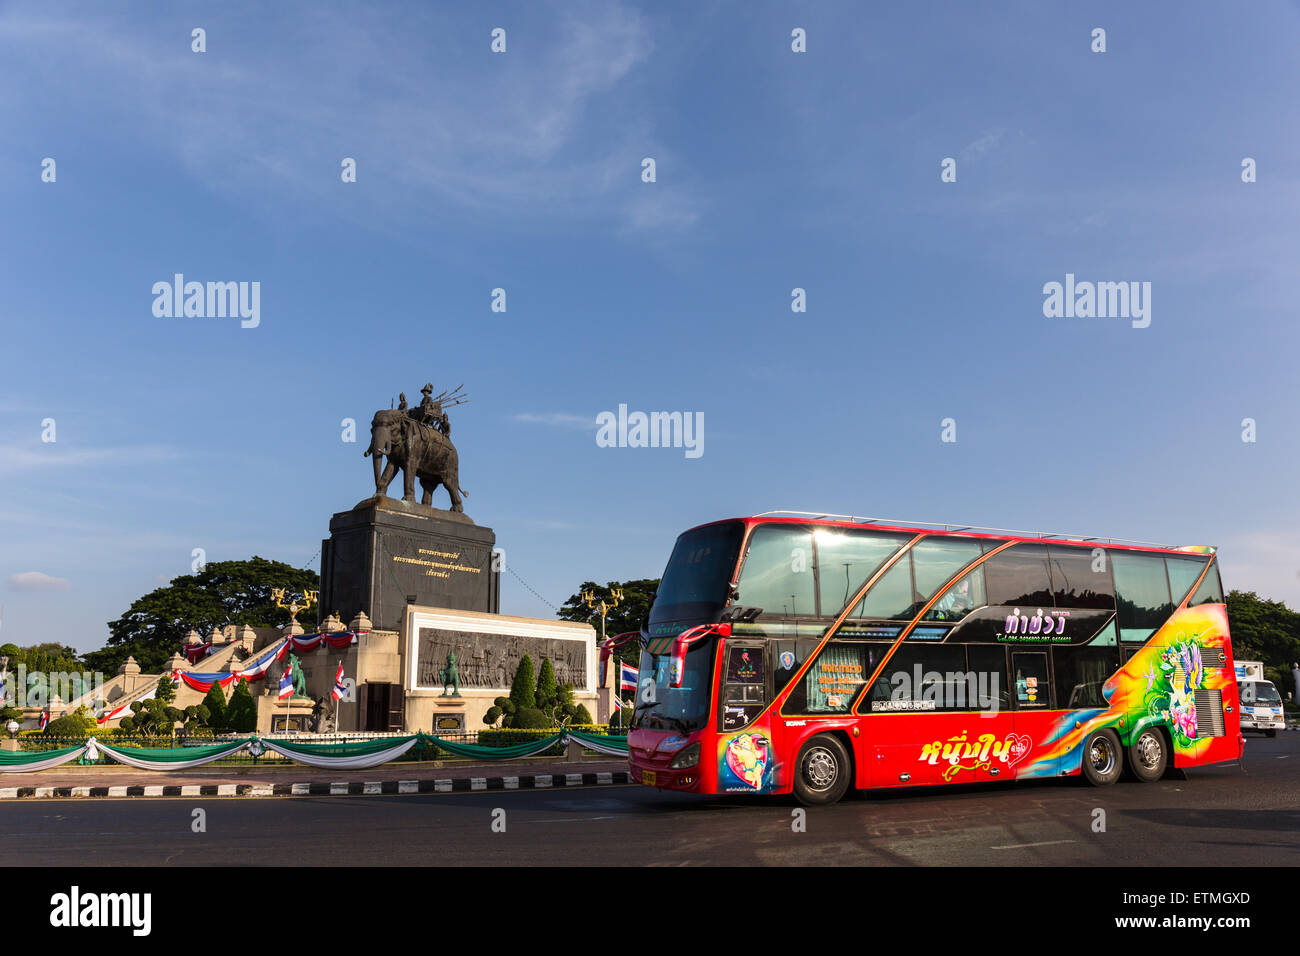 King Rama I Monument, elephant, red bus in the roundabout, Buri Ram, Buriram Province, Isan, Isaan, Thailand - Stock Image